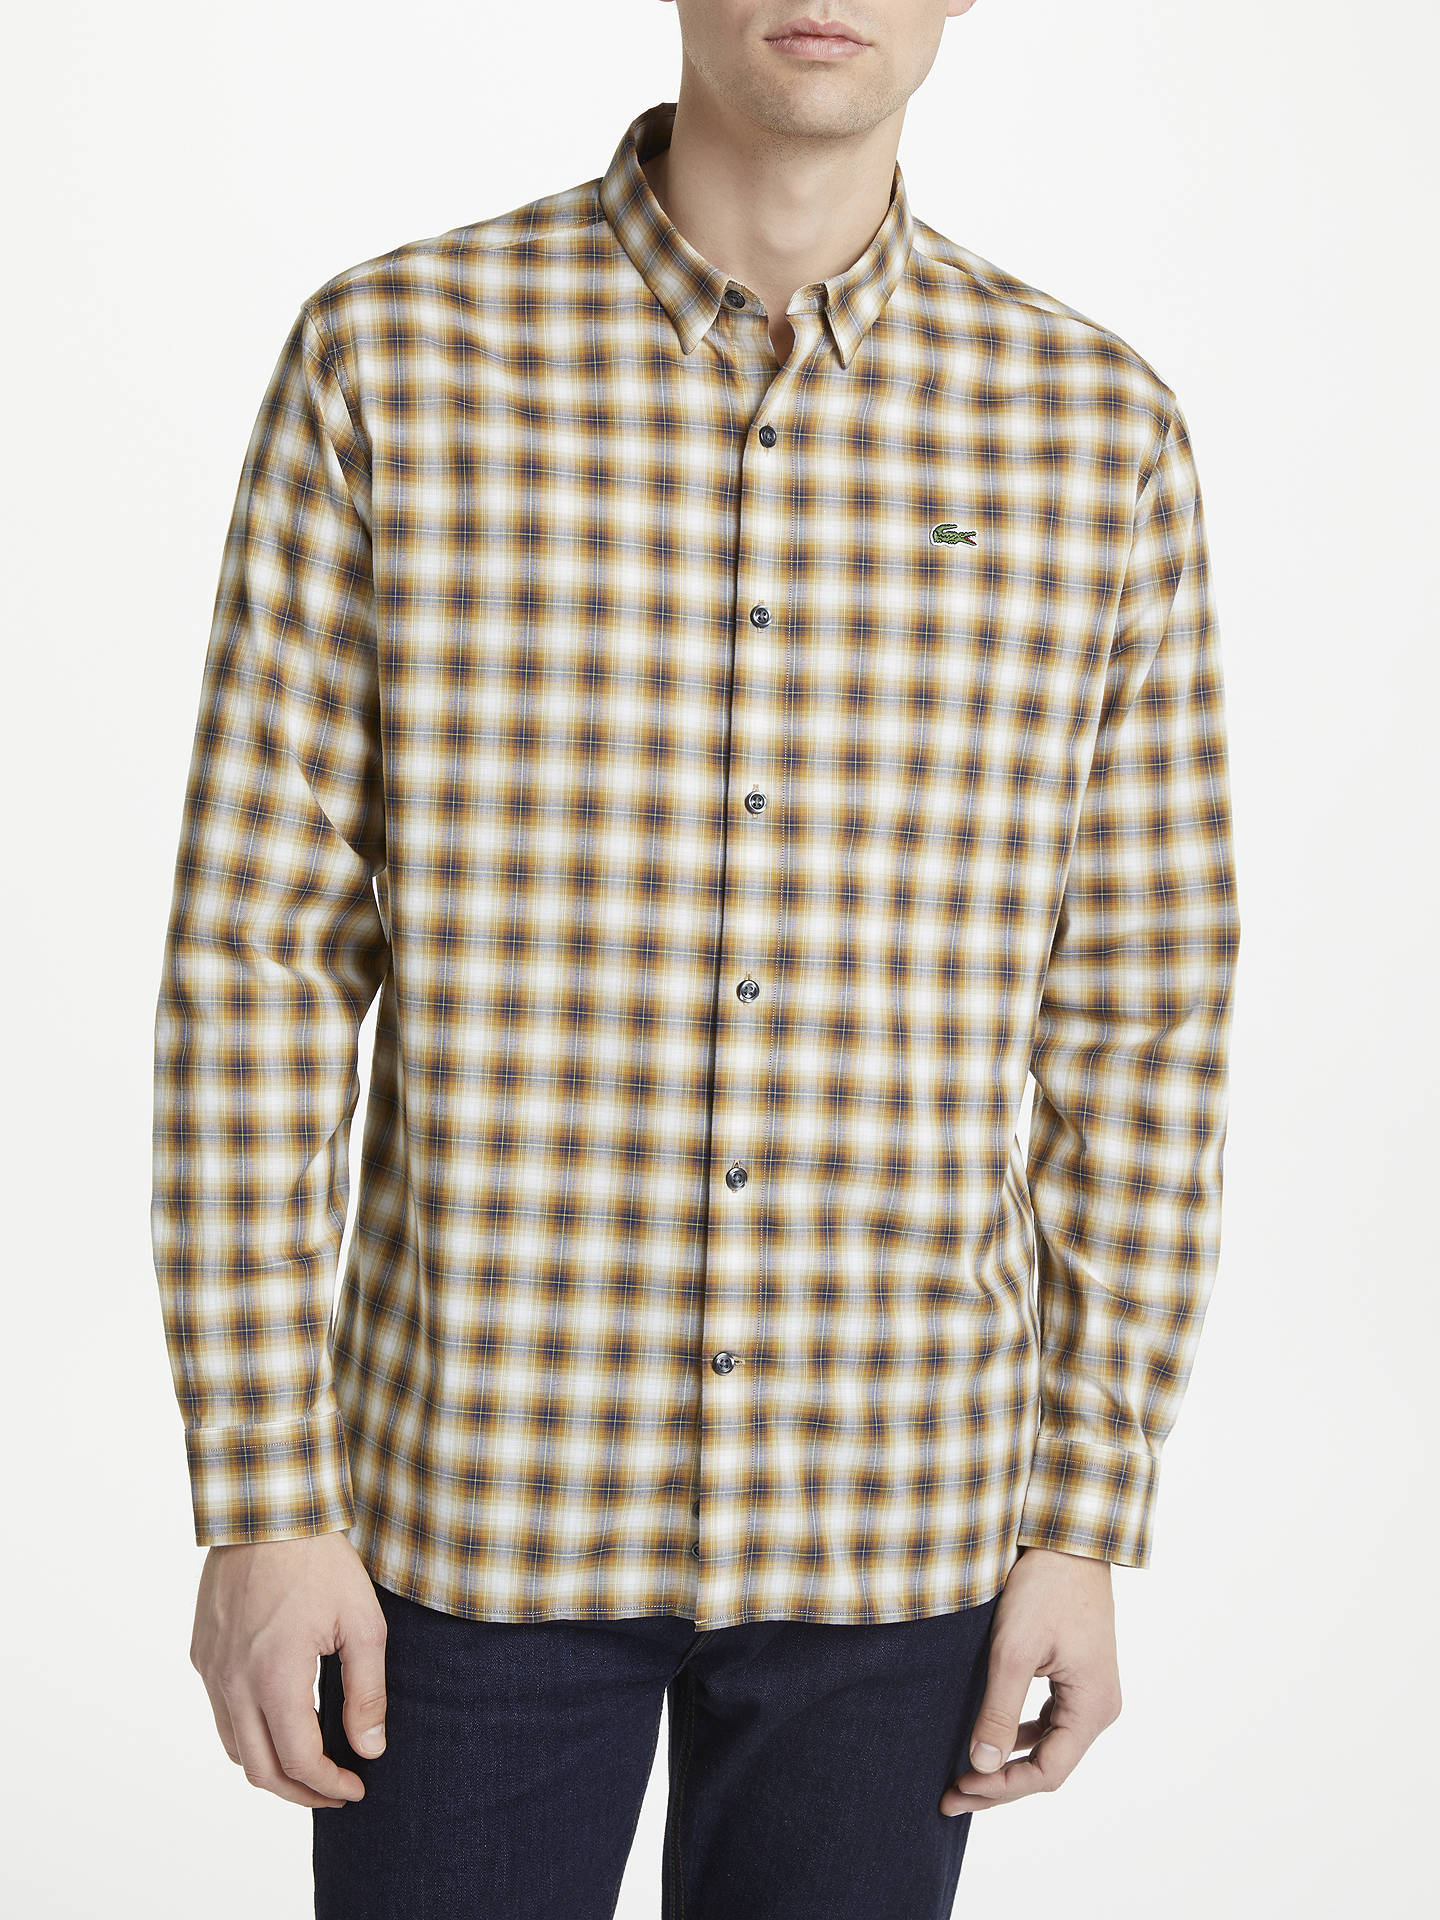 d7cb12fe Lacoste LIVE Boxy Long Sleeve Check Shirt, Brown at John Lewis ...